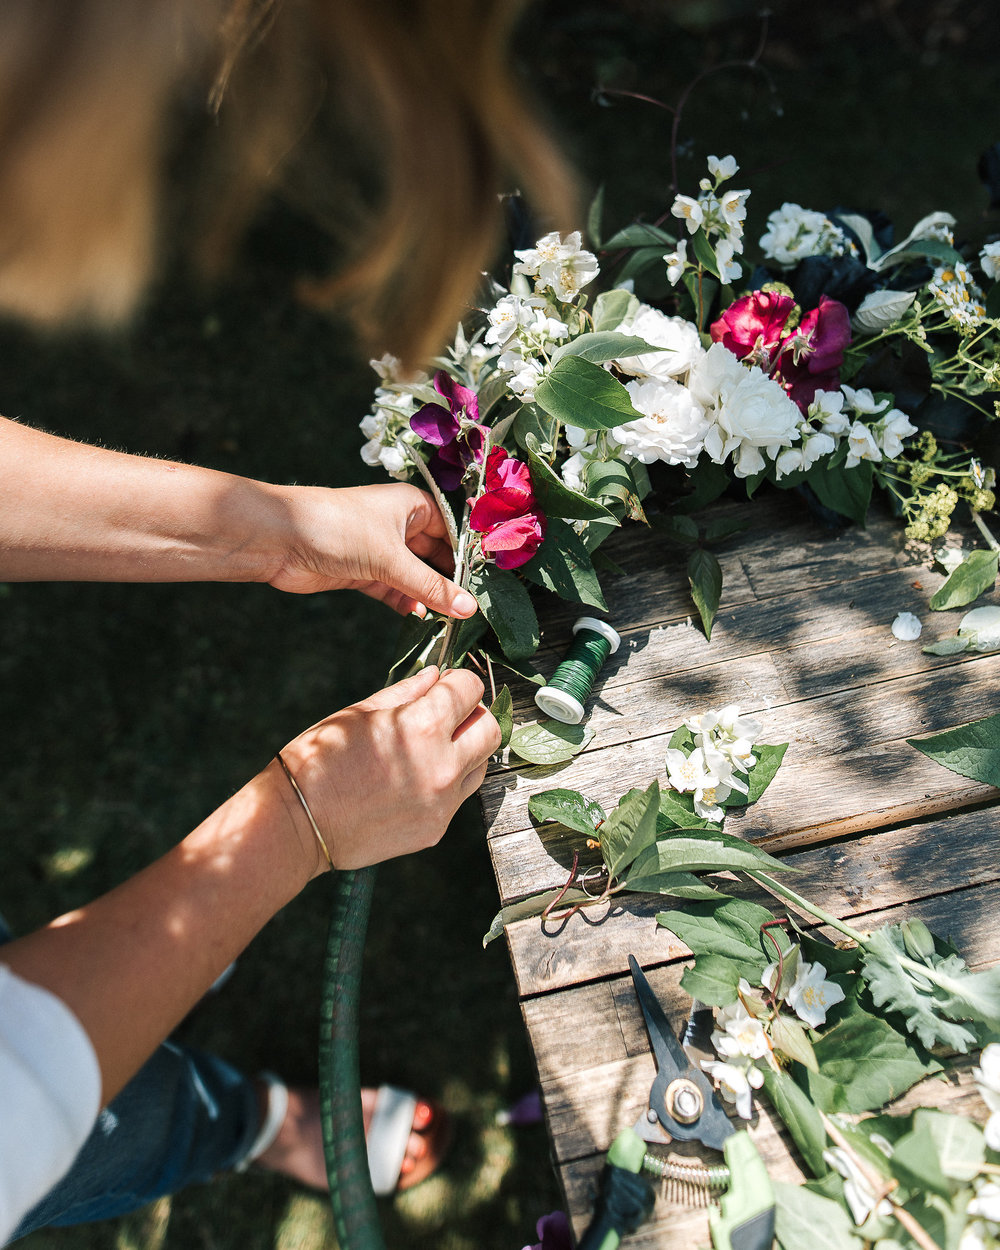 DIY project - Floral wreath using a hula hoop